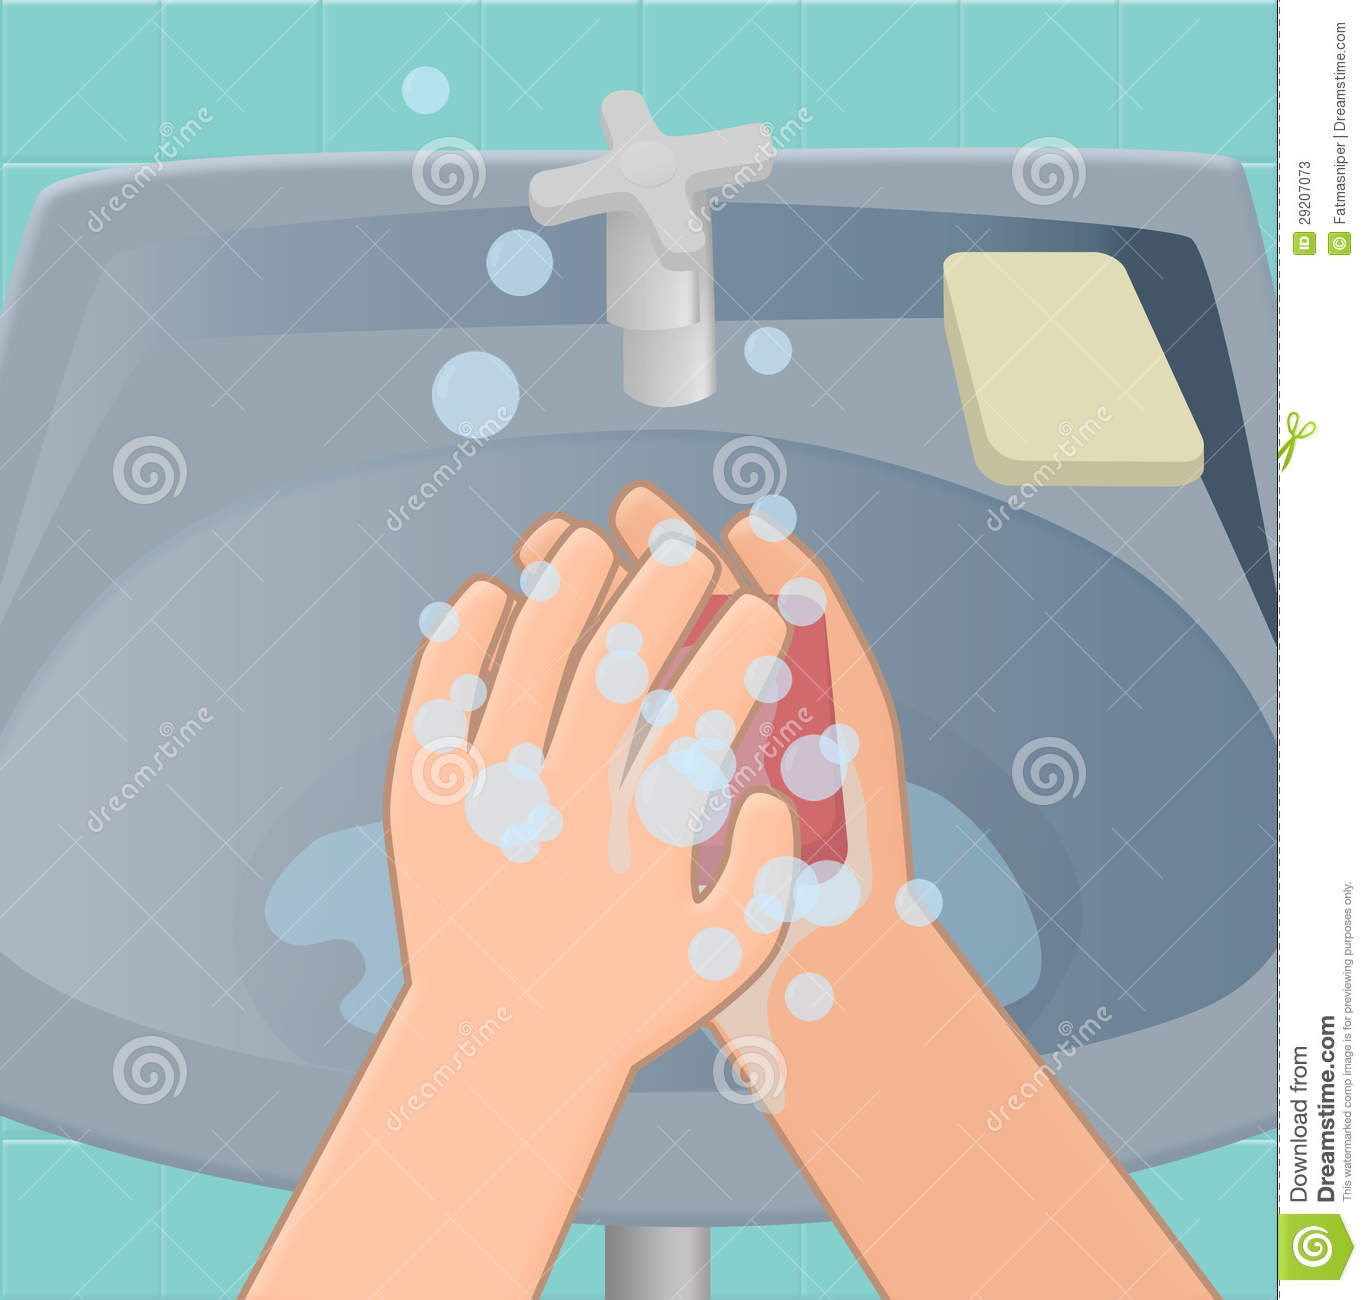 Second hand washing stages